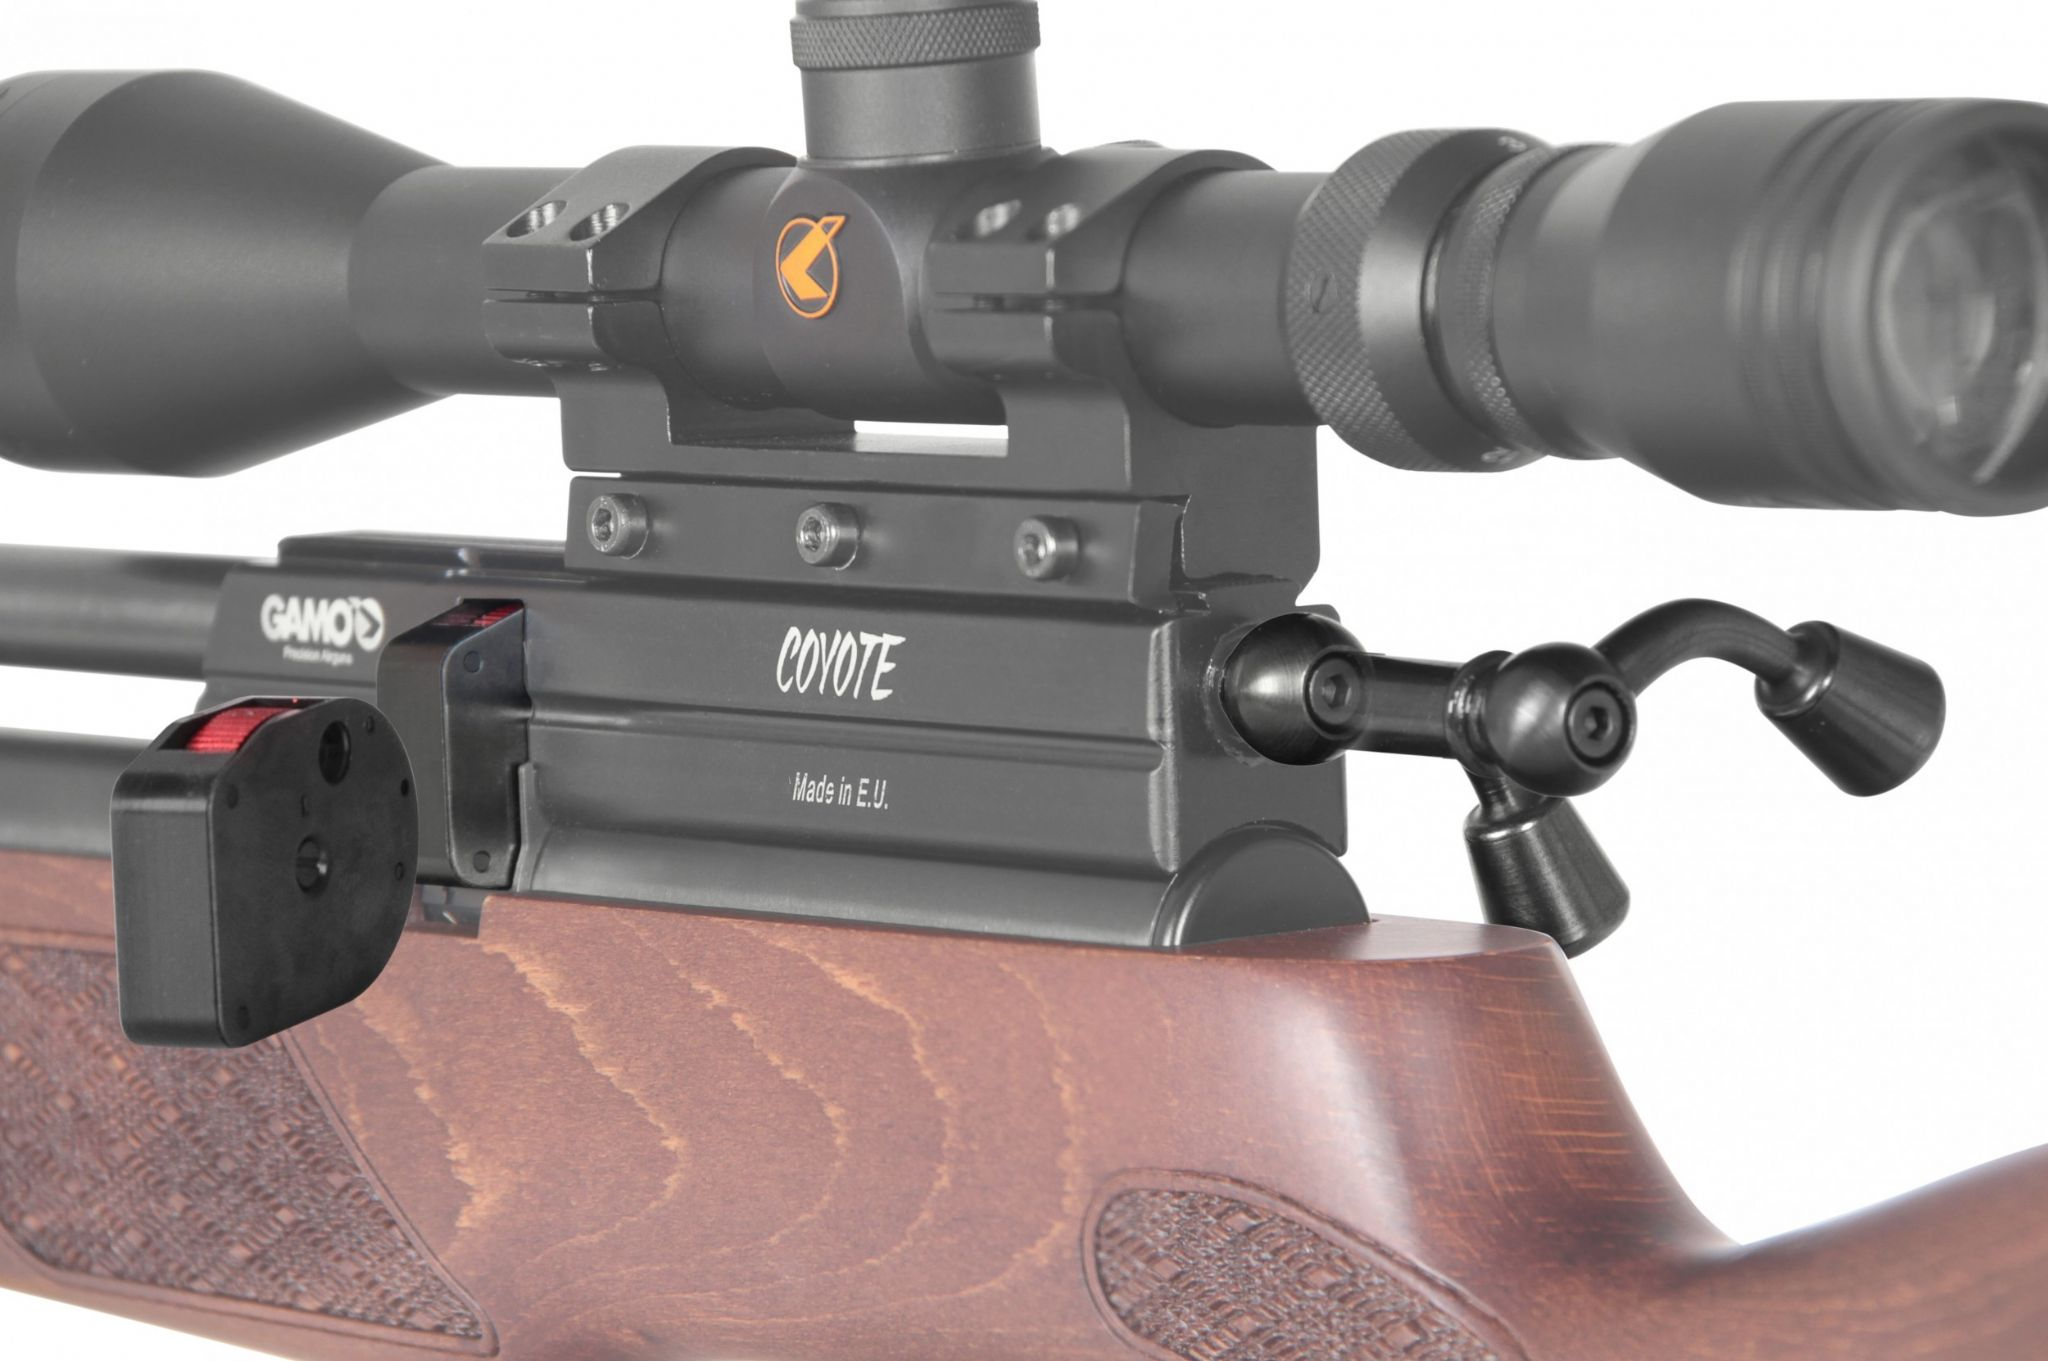 Gamo Coyote PCP Precharged Air Rifle Silencer Scope Bag Pack - Beech